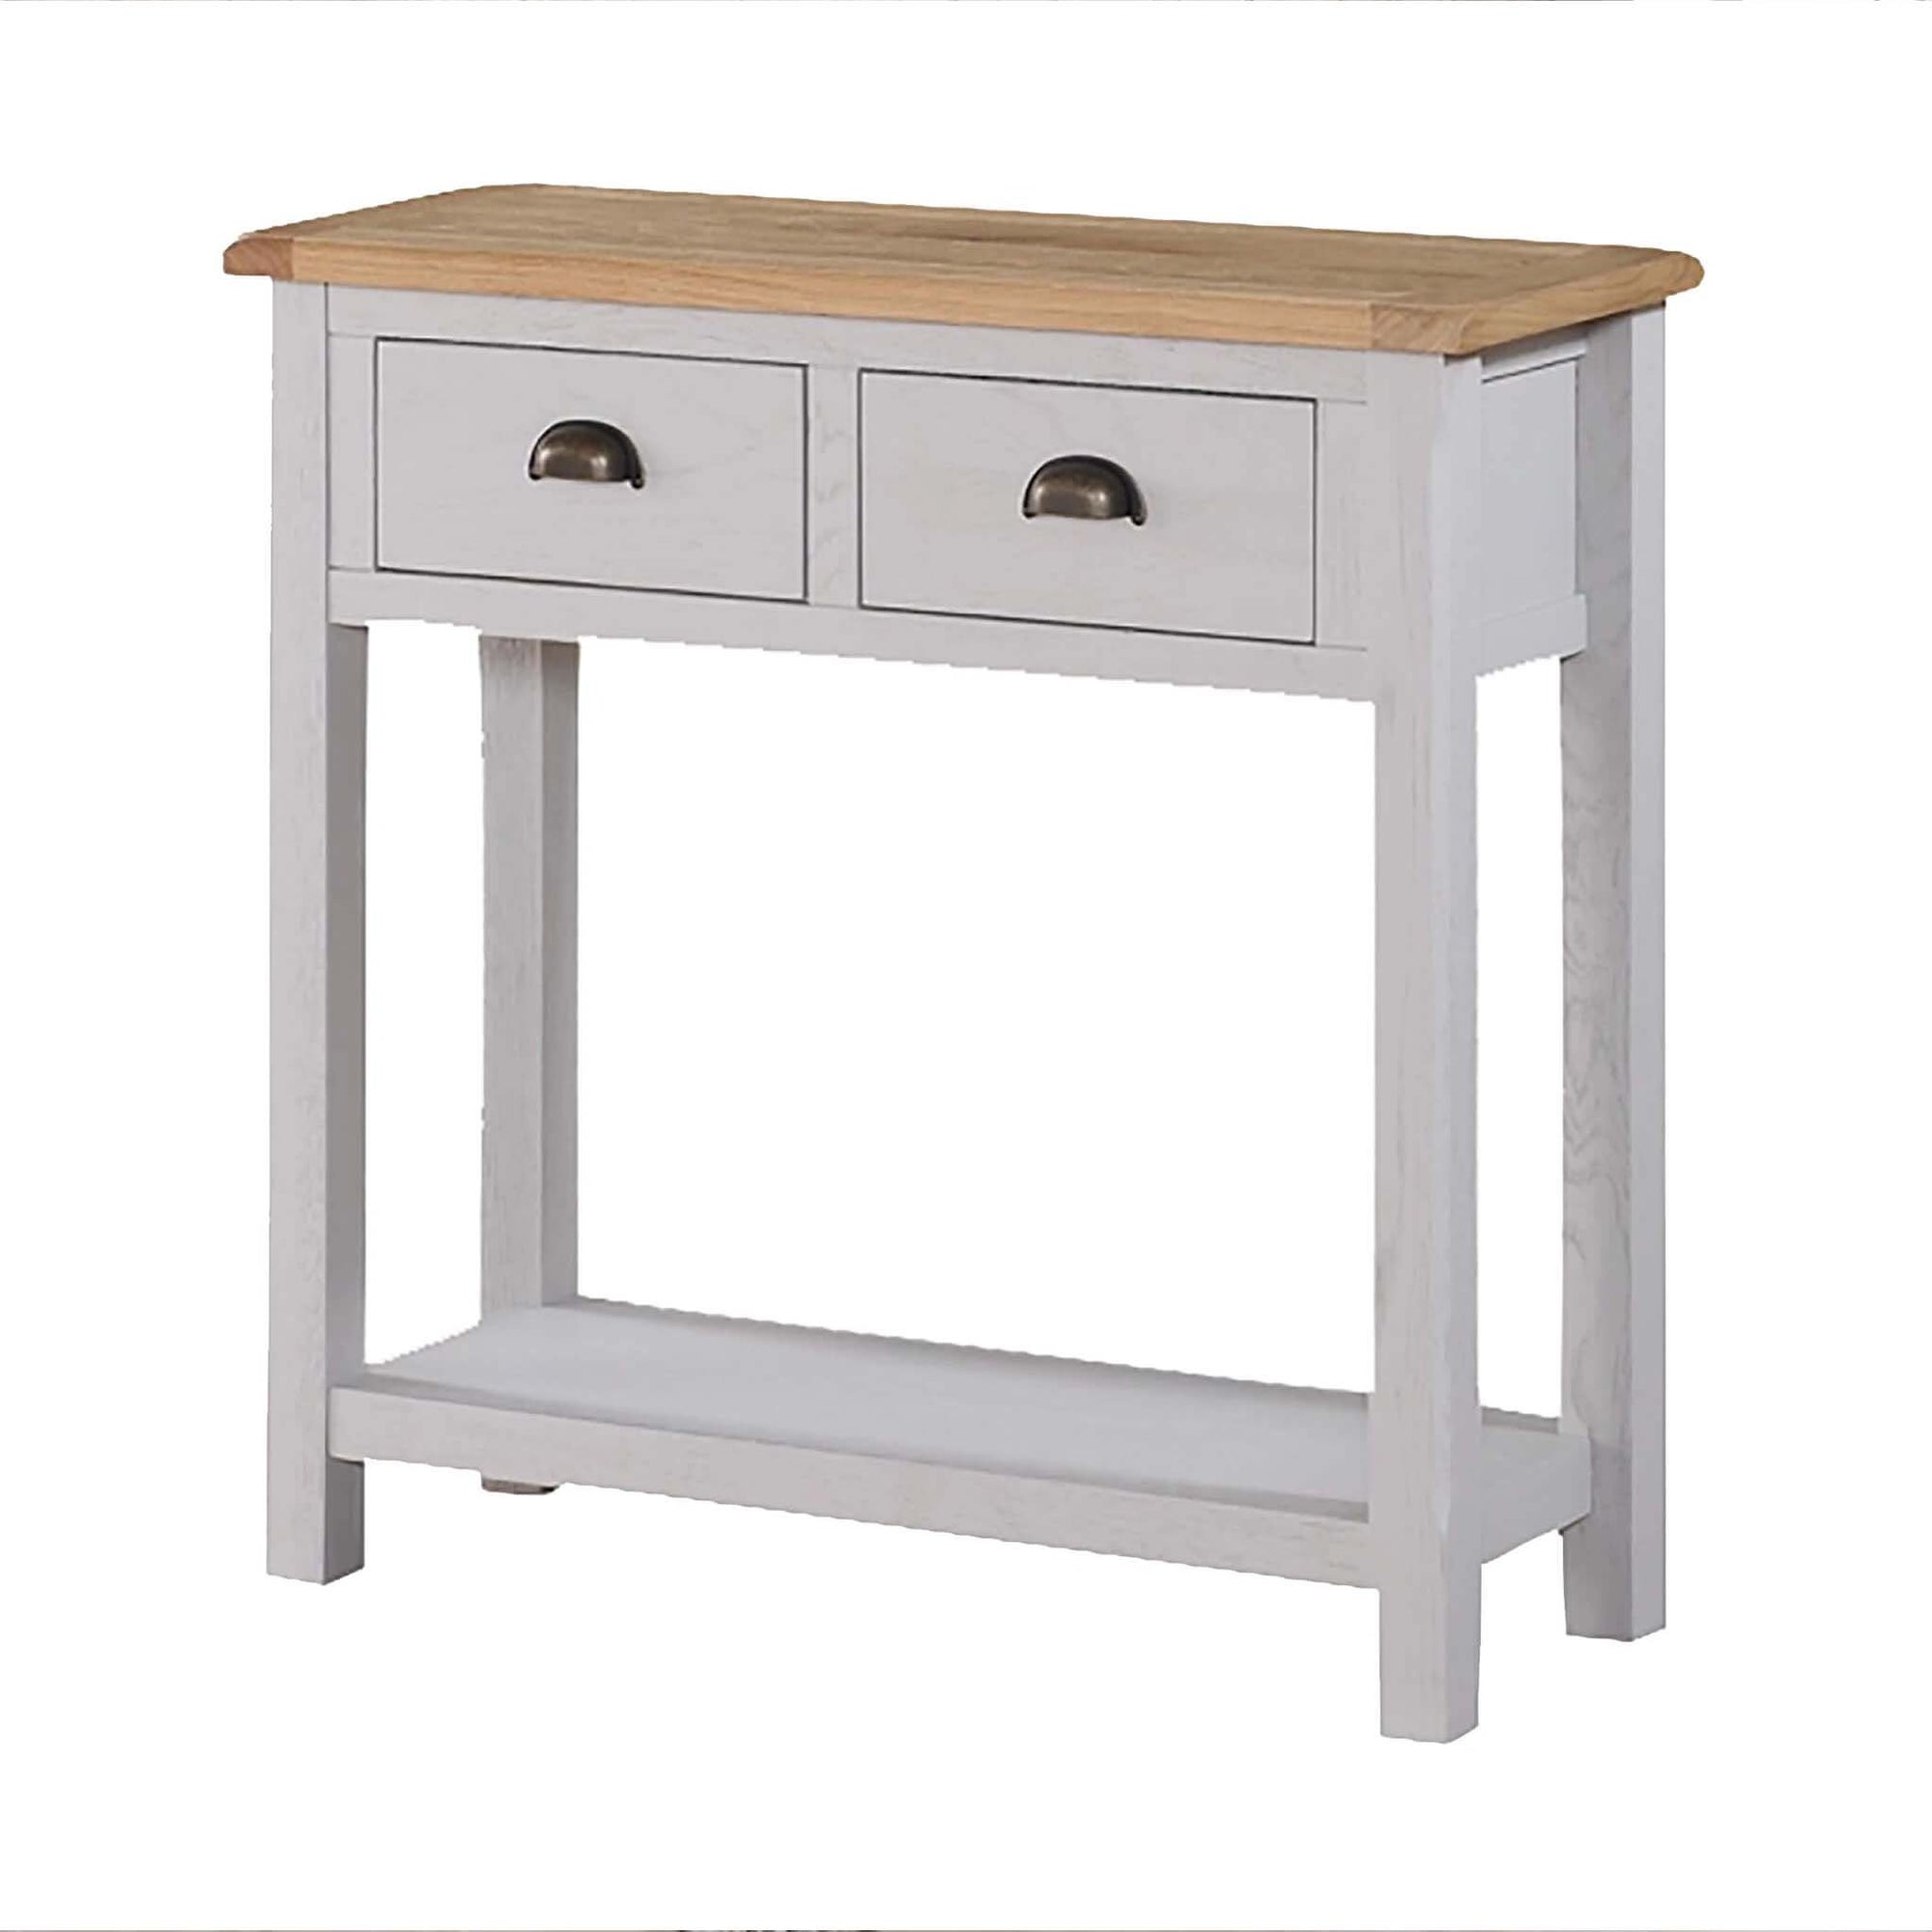 Kilmore Painted Hall Table with 2 Drawers by Roseland Furniture